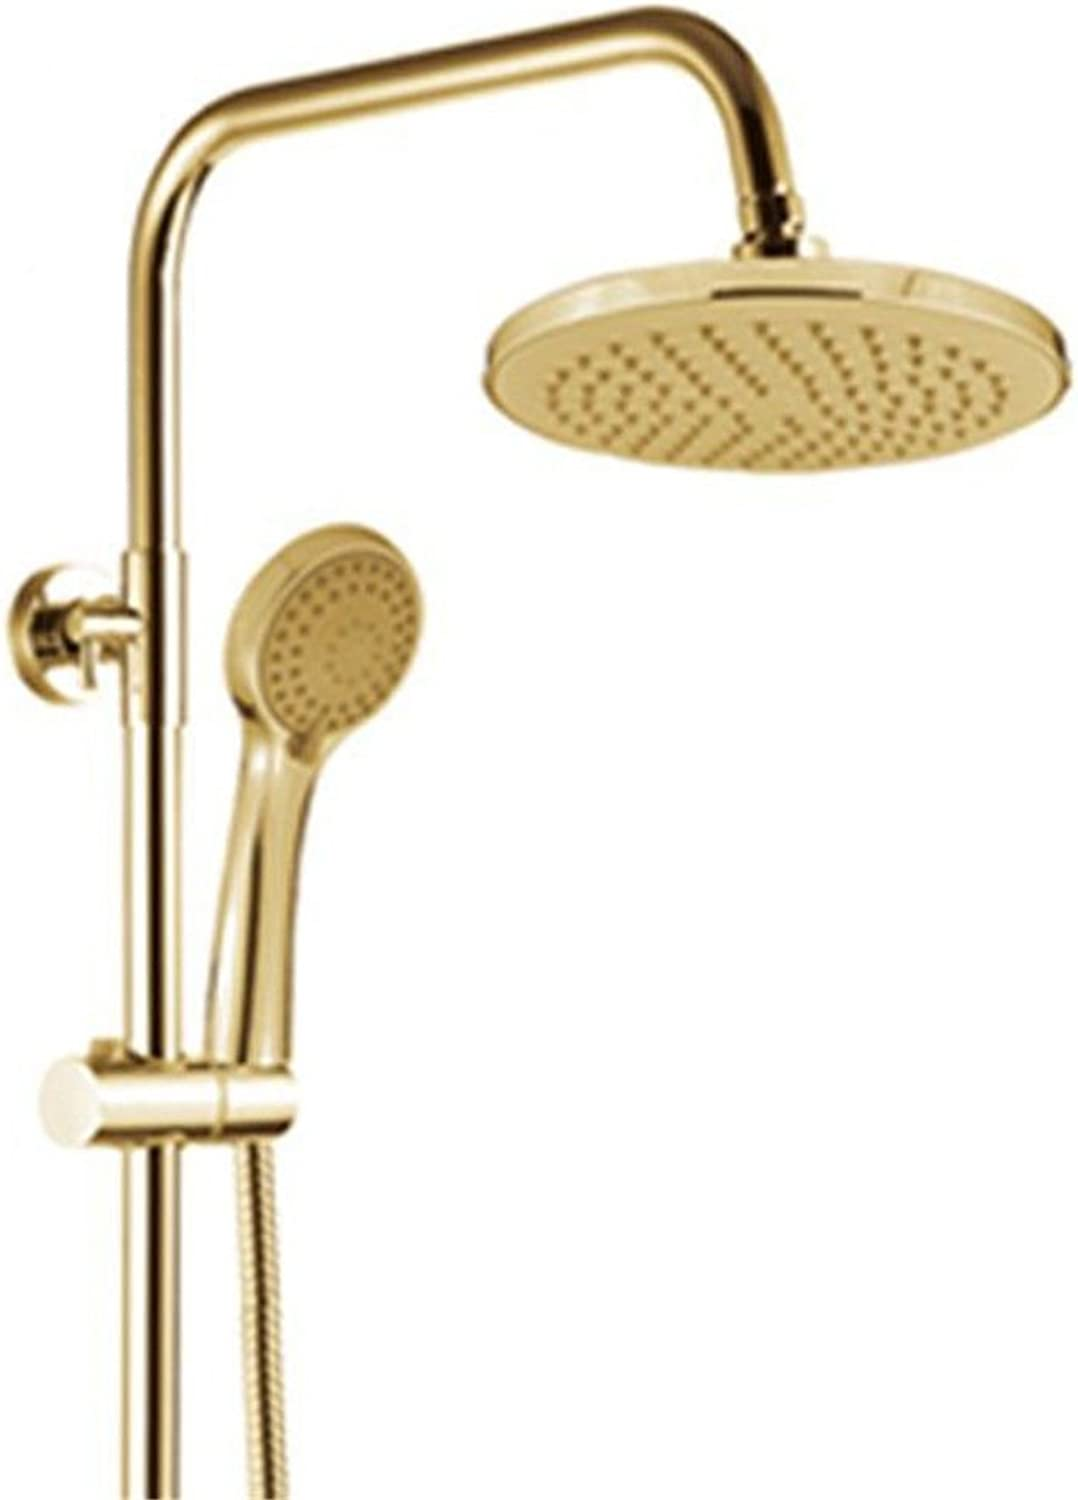 Lalaky Taps Faucet Kitchen Mixer Sink Waterfall Bathroom Mixer Basin Mixer Tap for Kitchen Bathroom and Washroom Full Copper Retro gold-Plated Lifting Supercharger Shower Wall-Mounted